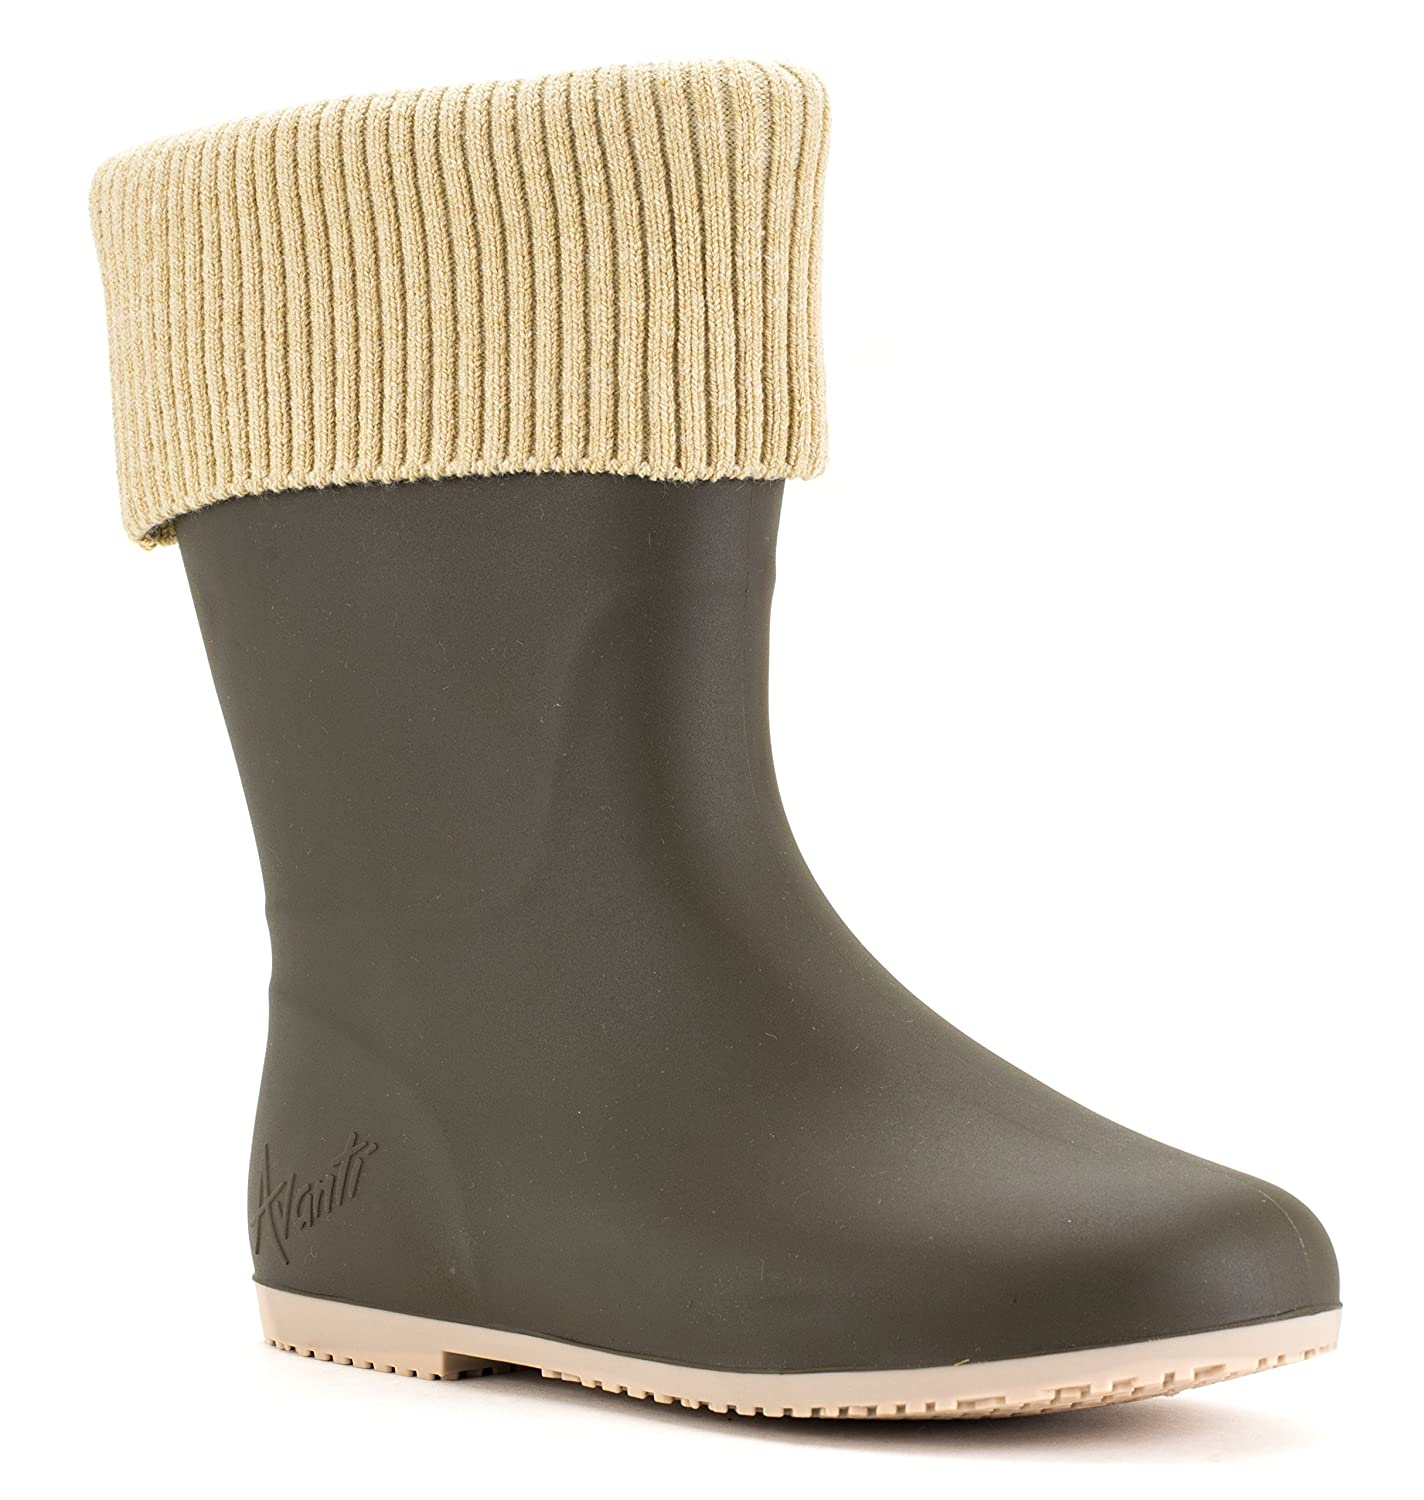 Avanti Storm Rain Boot Waterproof With Removable Knitted Cuff Monogram-Able Foldable B078SY8X6N 6 B(M) US|Olive and Beige